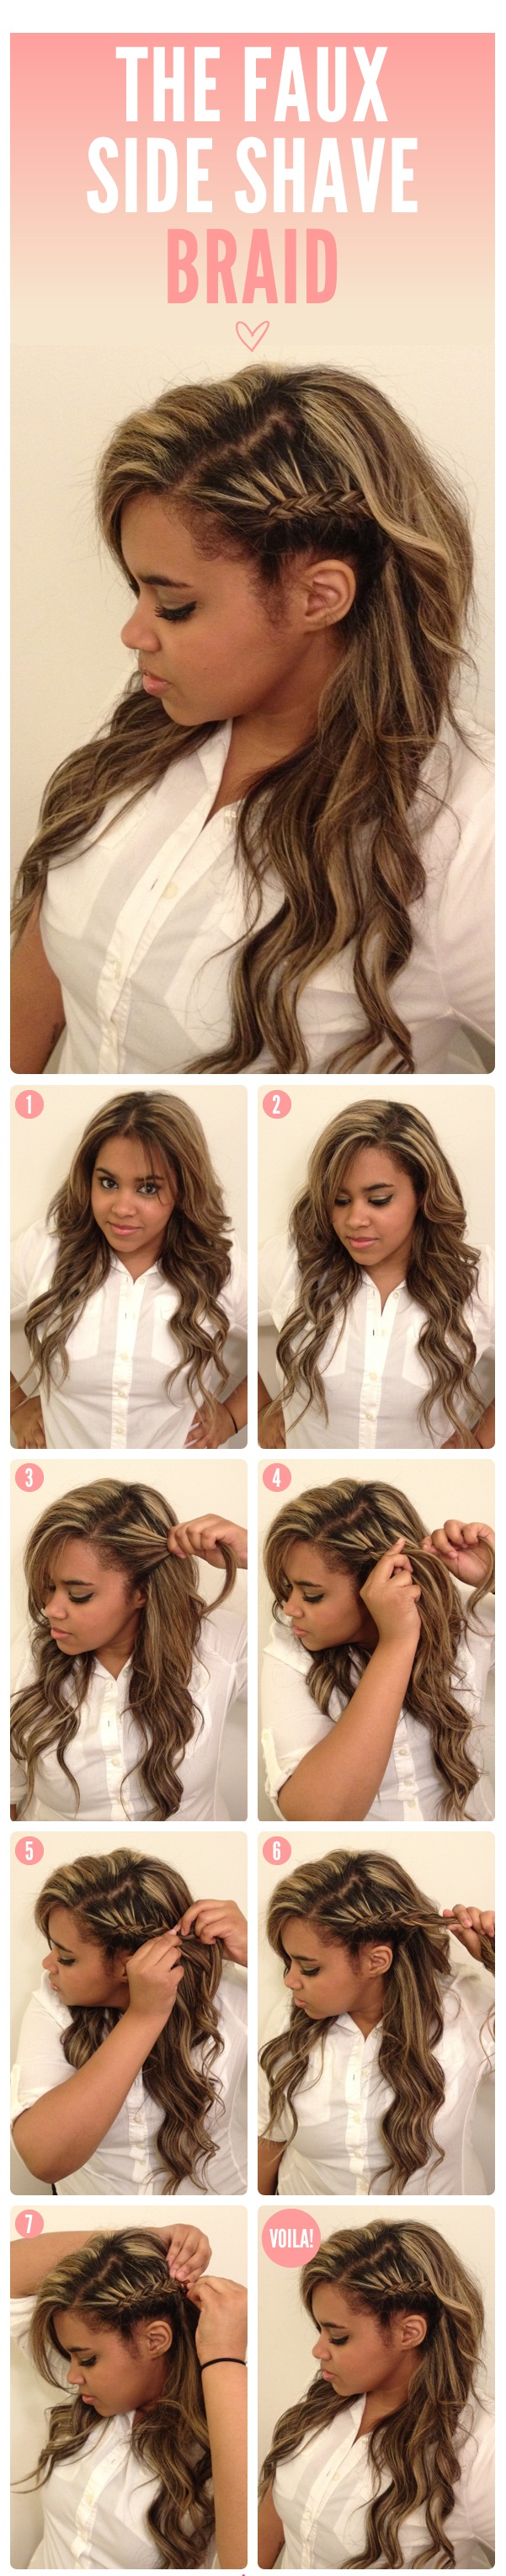 Astounding 25 Diy Braided Hairstyles You Really Have To Pin Hairstyle Inspiration Daily Dogsangcom